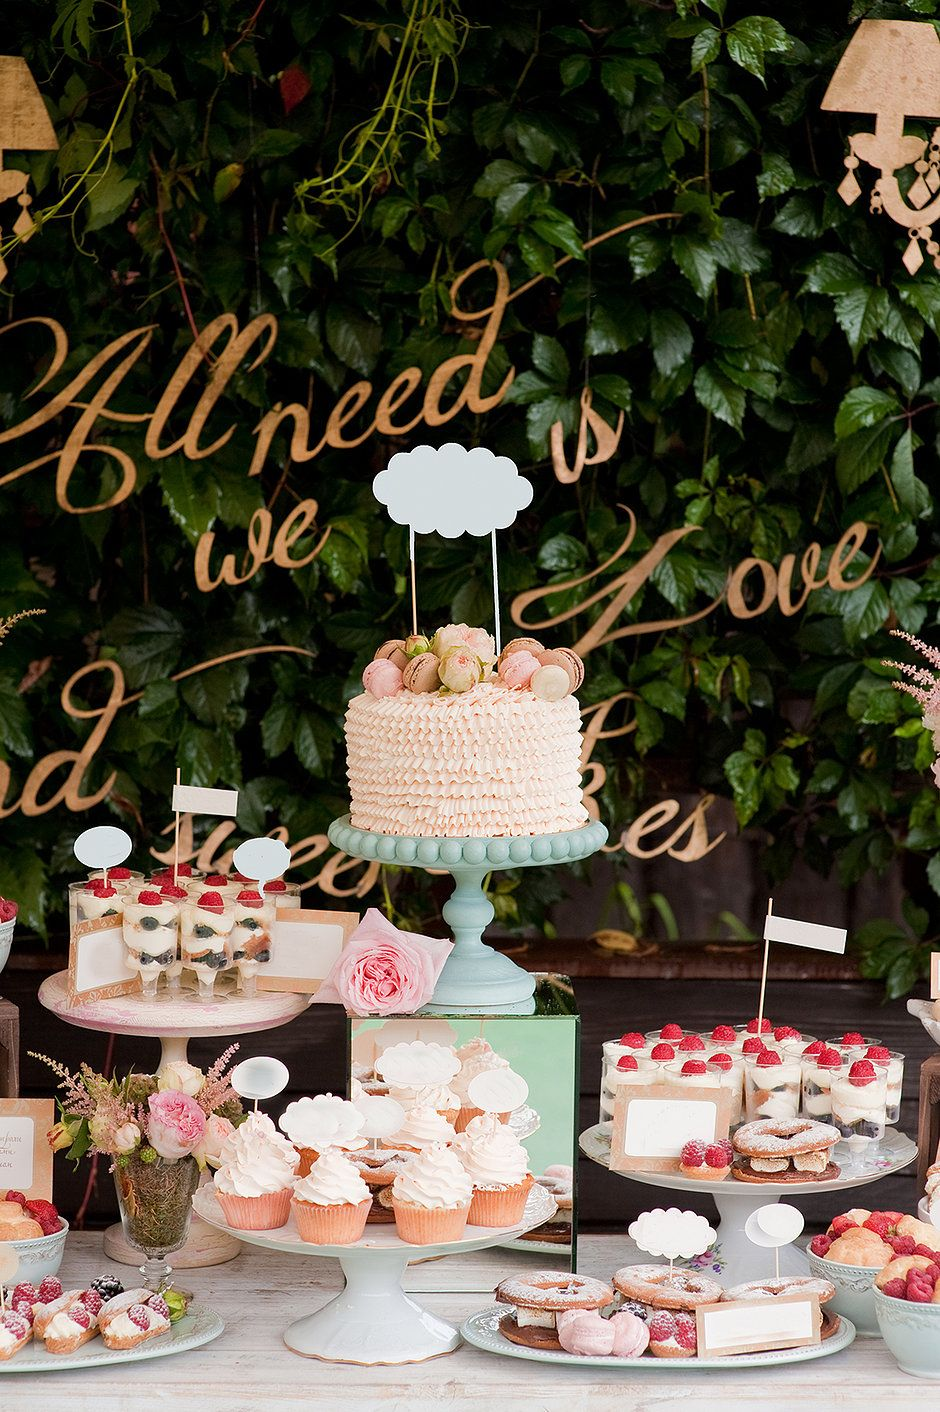 Wedding decorations hd  Pin by Pounds Bakery on Sweets Shop  Pinterest  Birthdays Baby